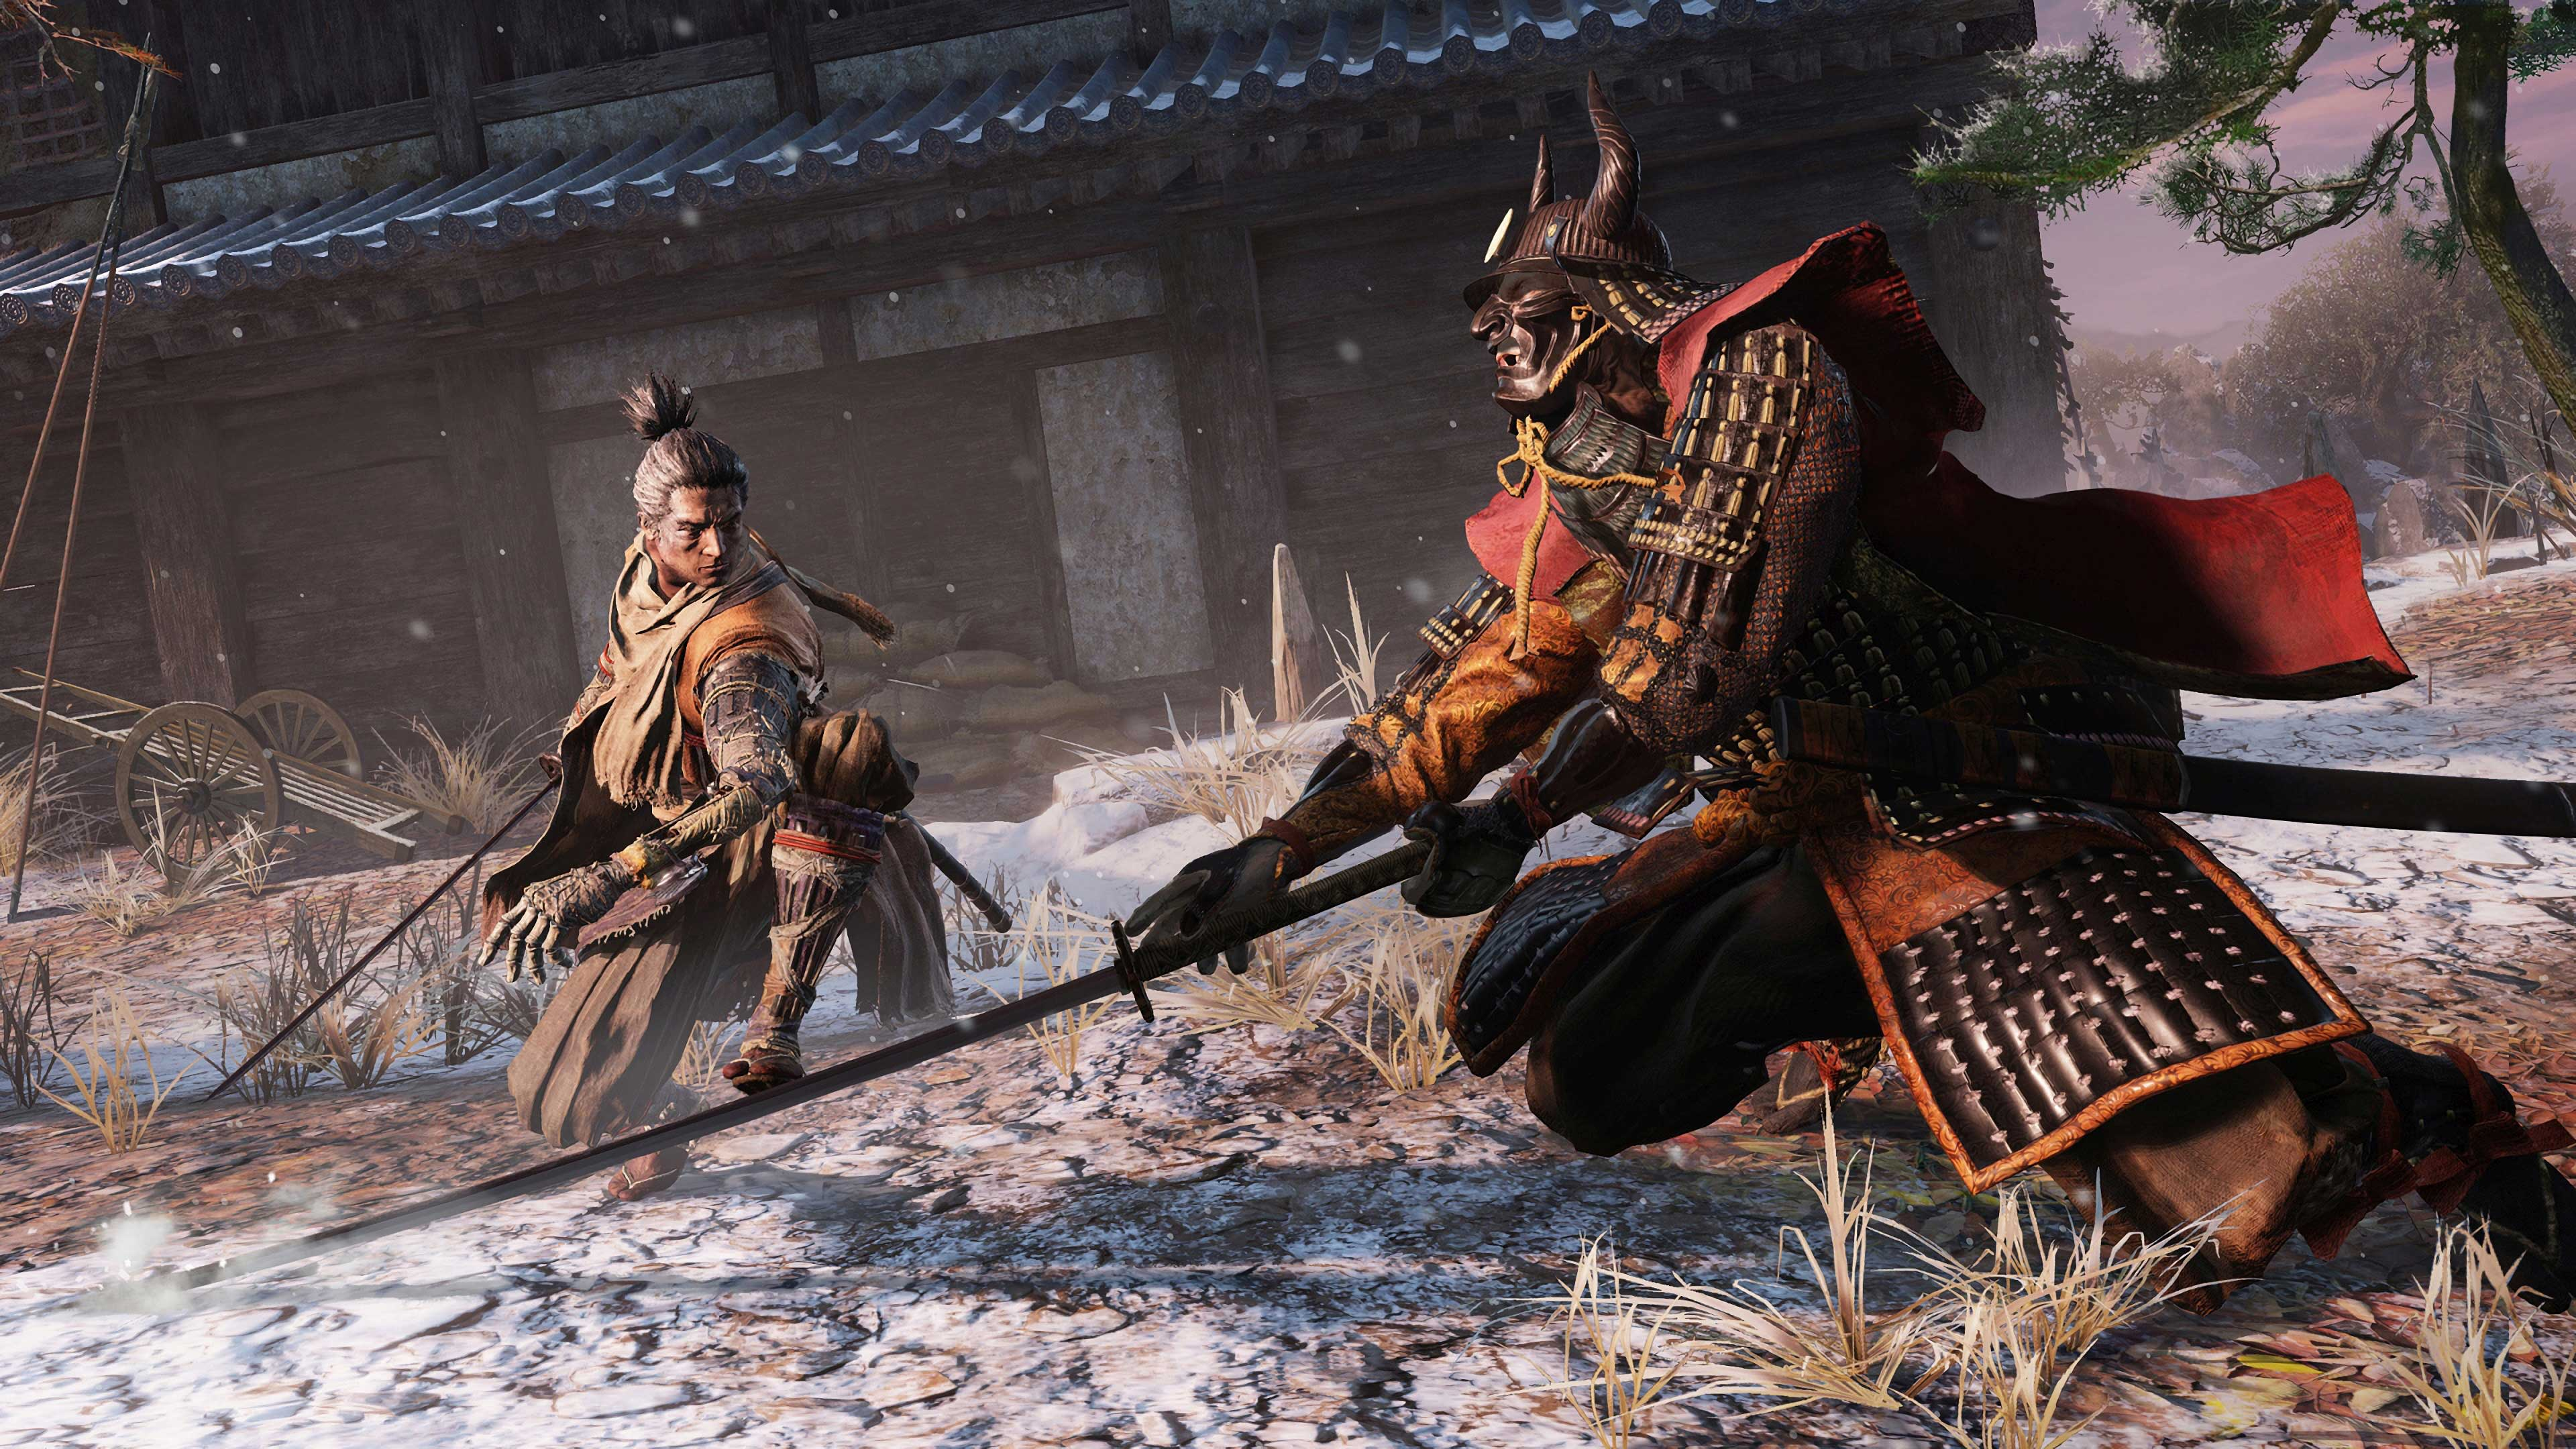 Sekiro Shadows Die Twice Wallpapers In Ultra Hd 4k Gameranx